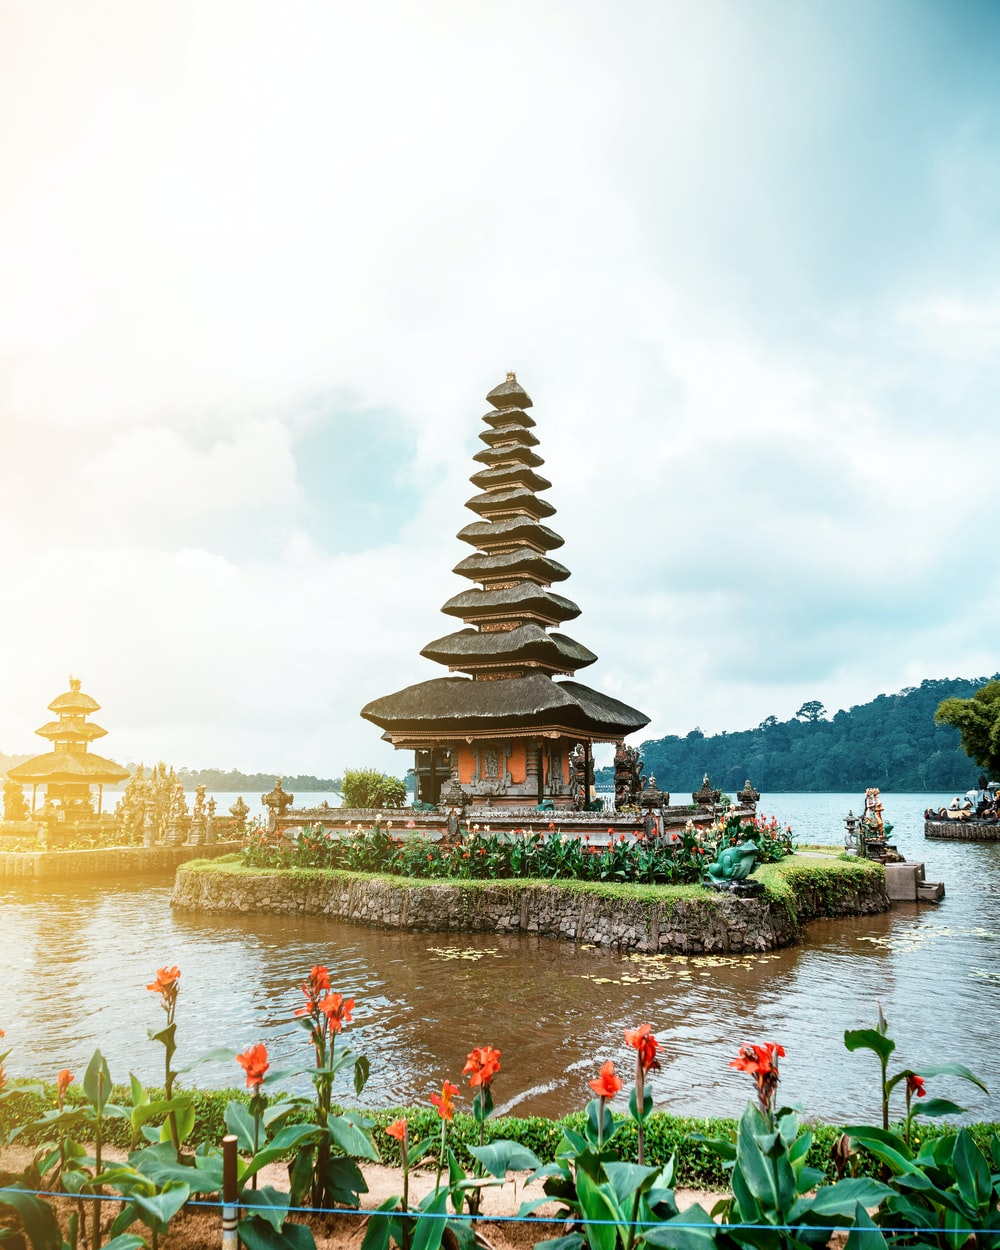 brown and white temple near body of water during daytime